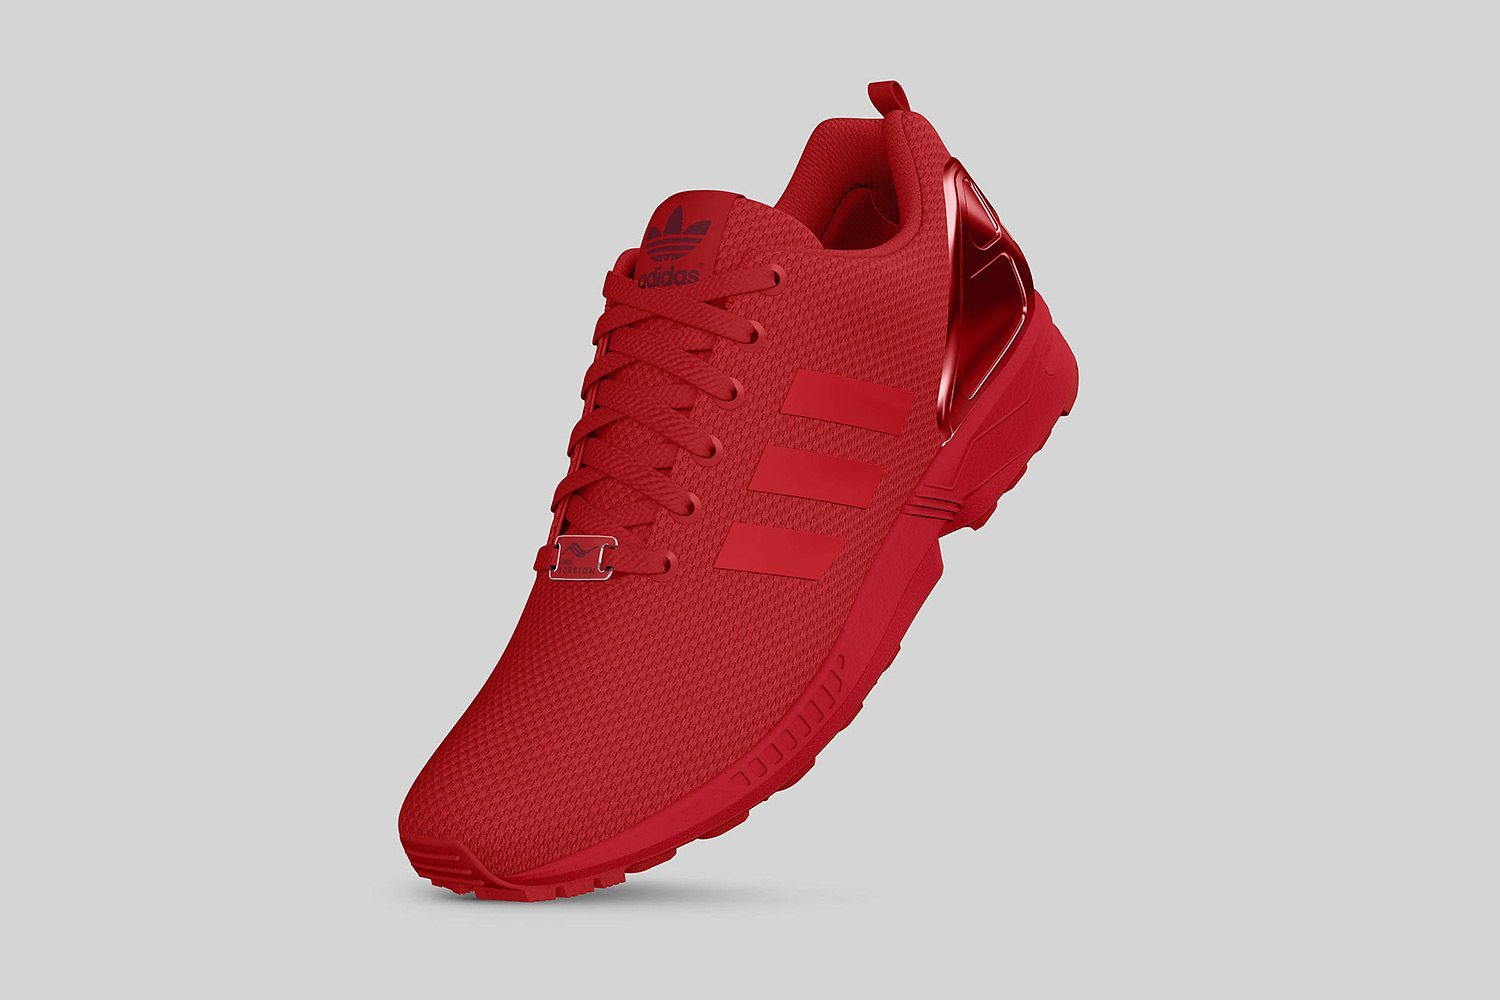 new style 37633 62a91 store adidas zx flux junior red screen c1e81 8fef3